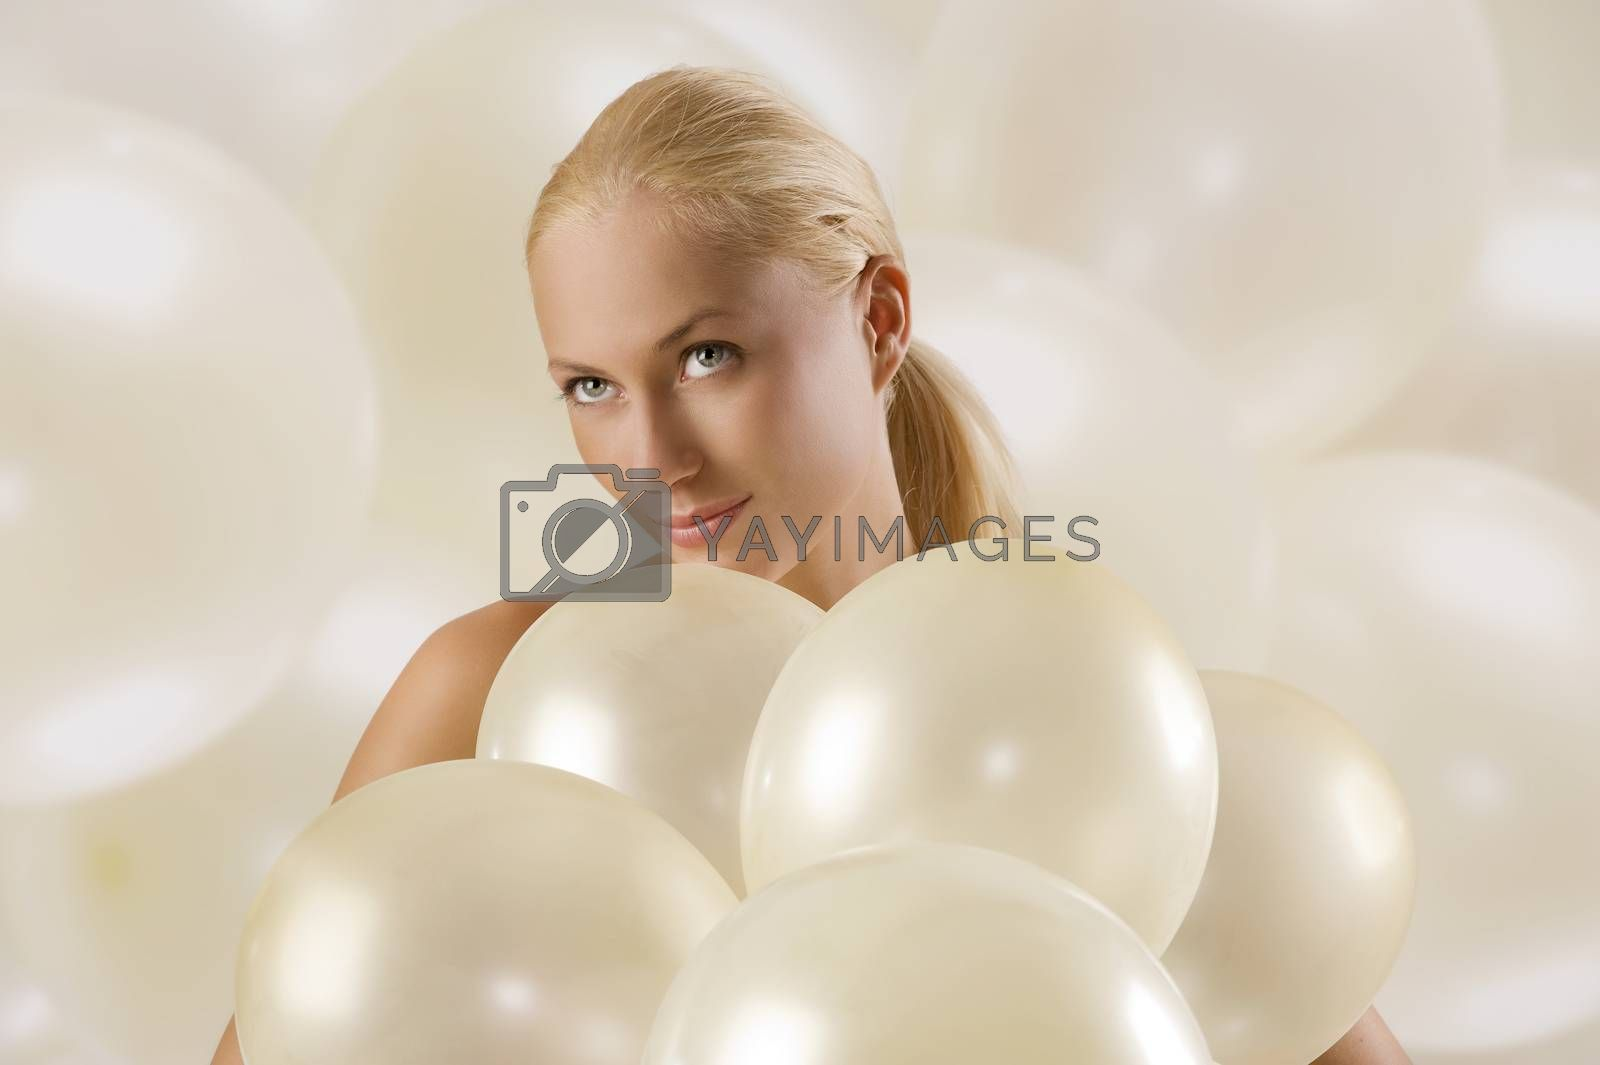 Royalty free image of girl with ballons by fotoCD